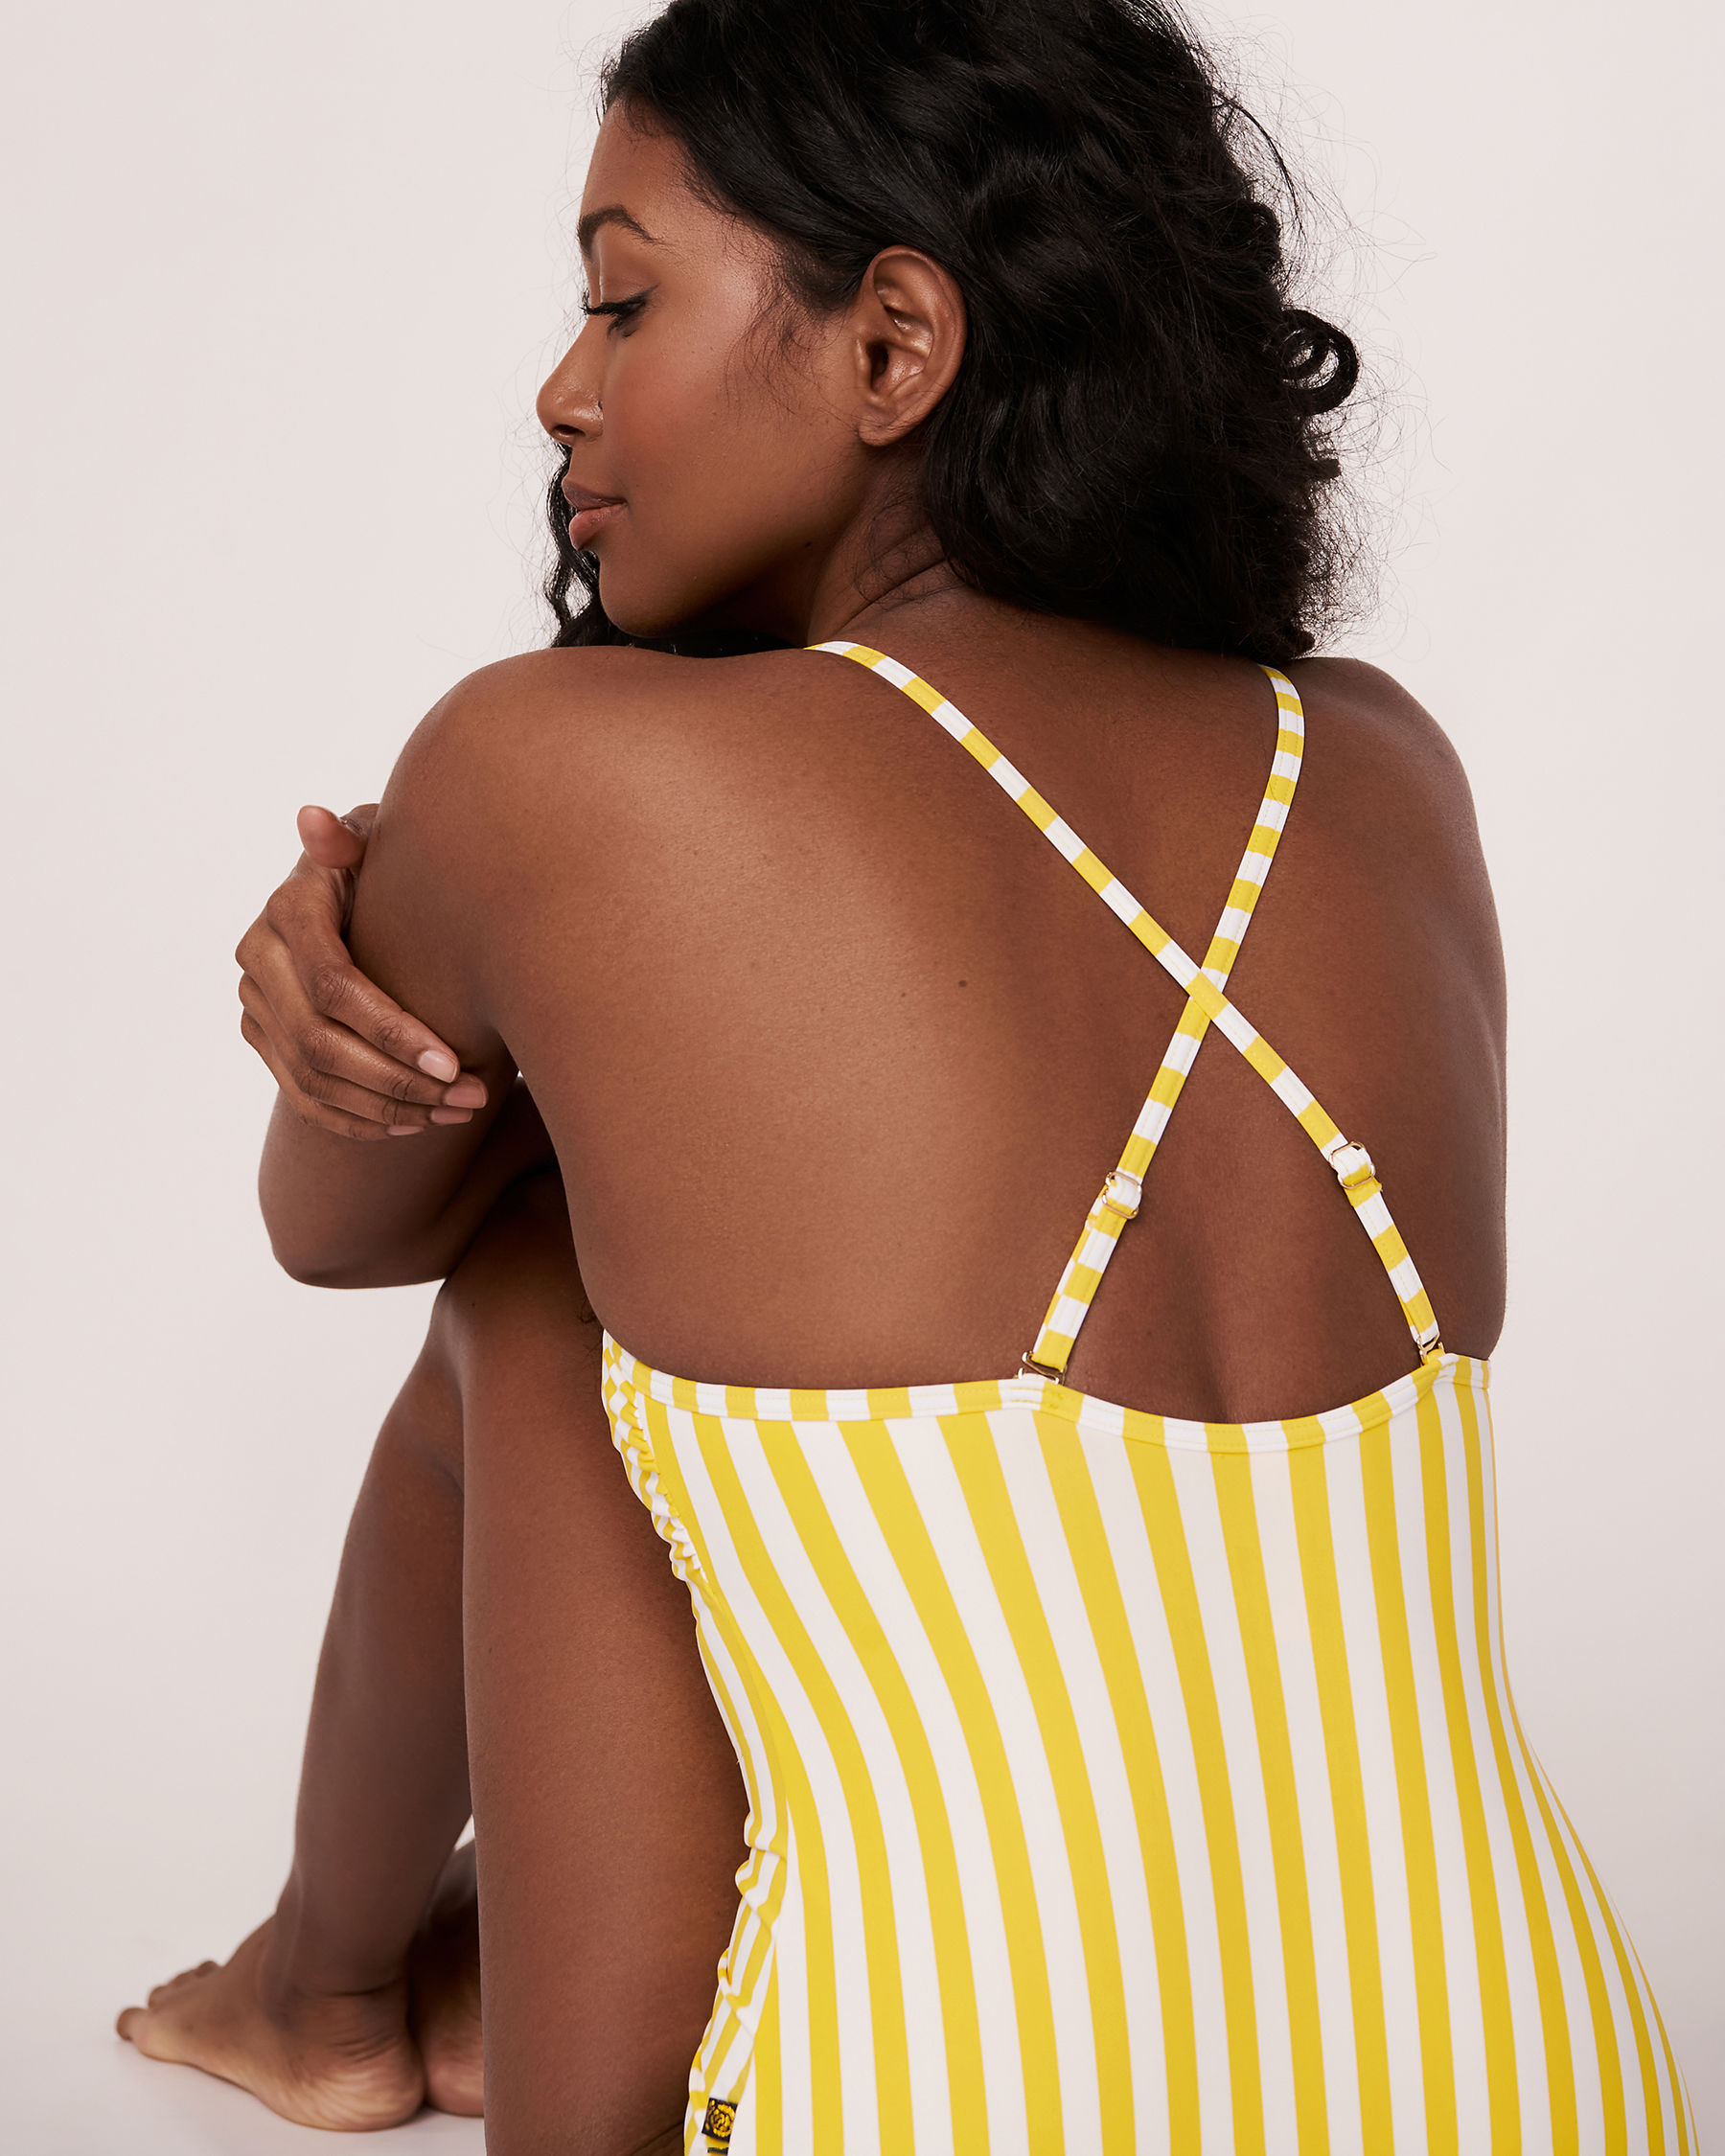 AQUAROSE YELLOW SUBMARINE Recycled Fibers One-piece Swimsuit Yellow and white stripes 70400016 - View3